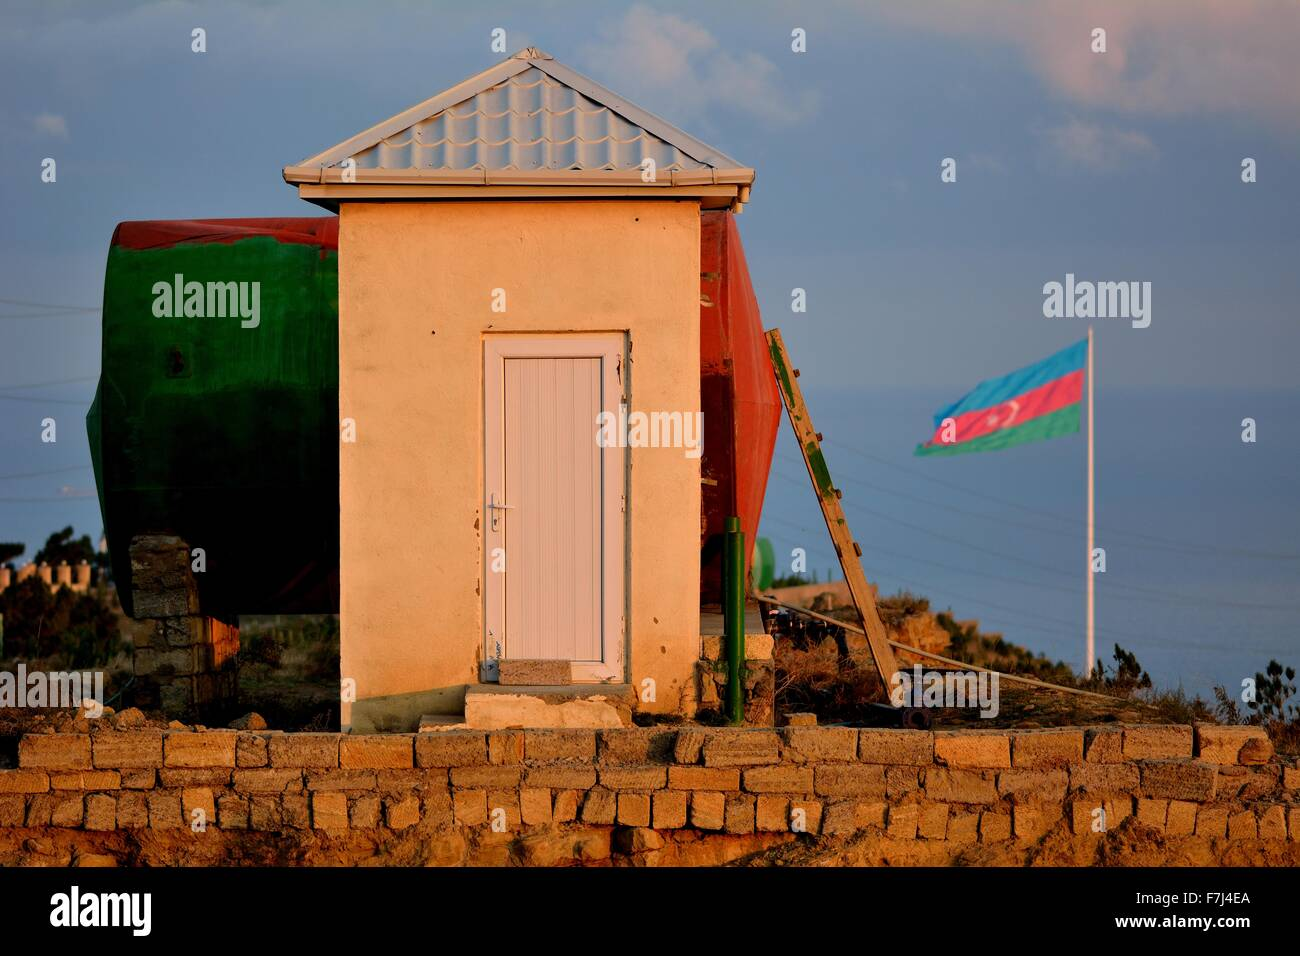 Azerbaijani flag in front of and matching colours from sky, hut and water tank - Stock Image